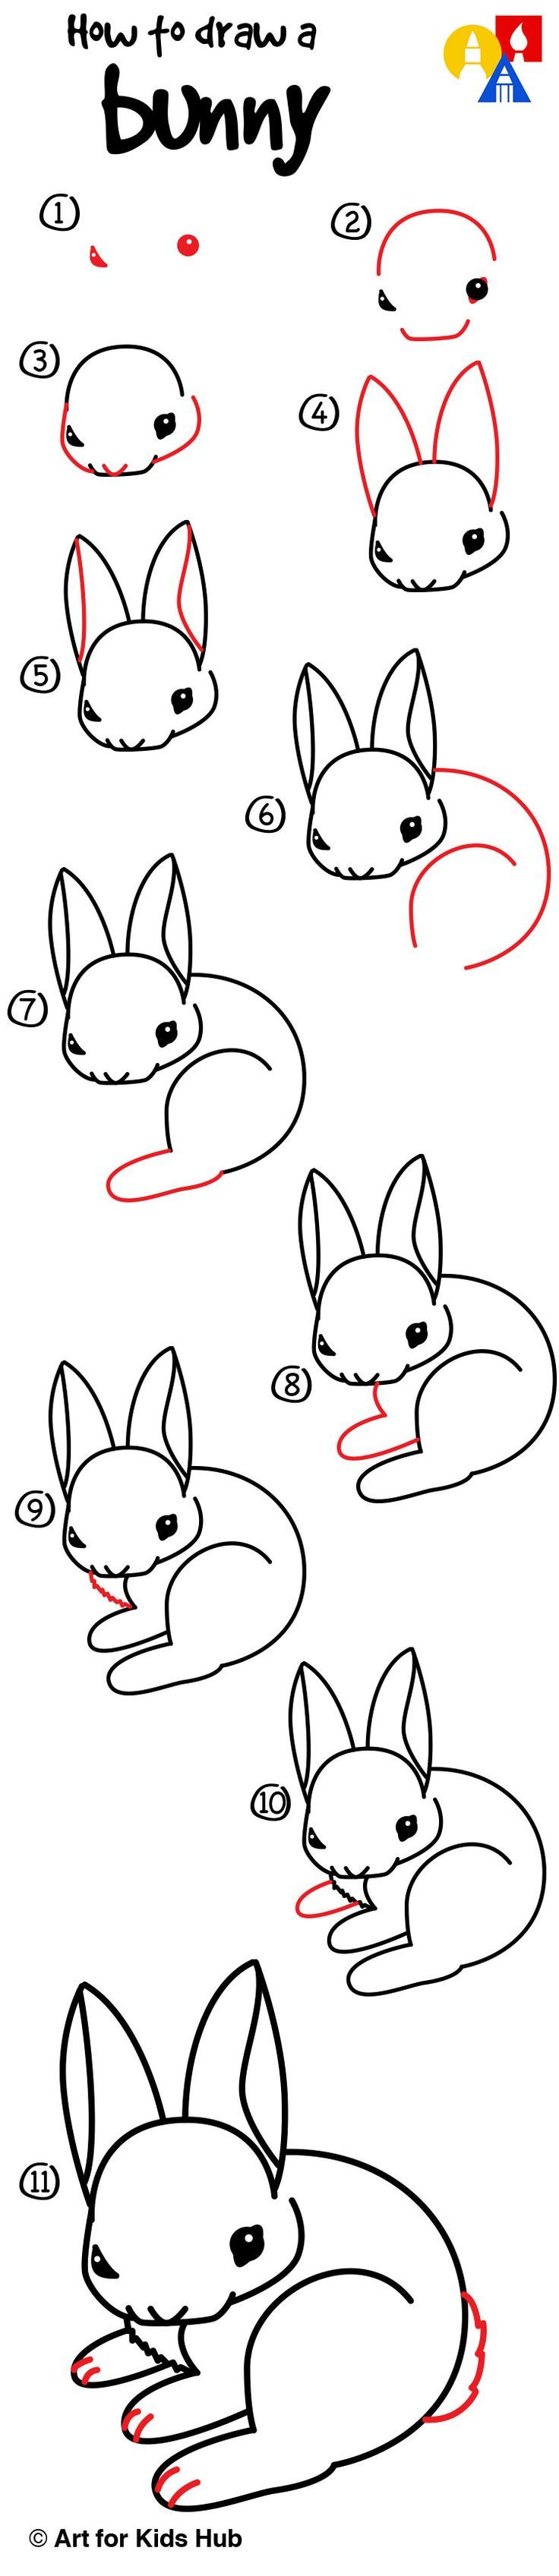 best 25 how to draw things ideas on pinterest cartoons to draw